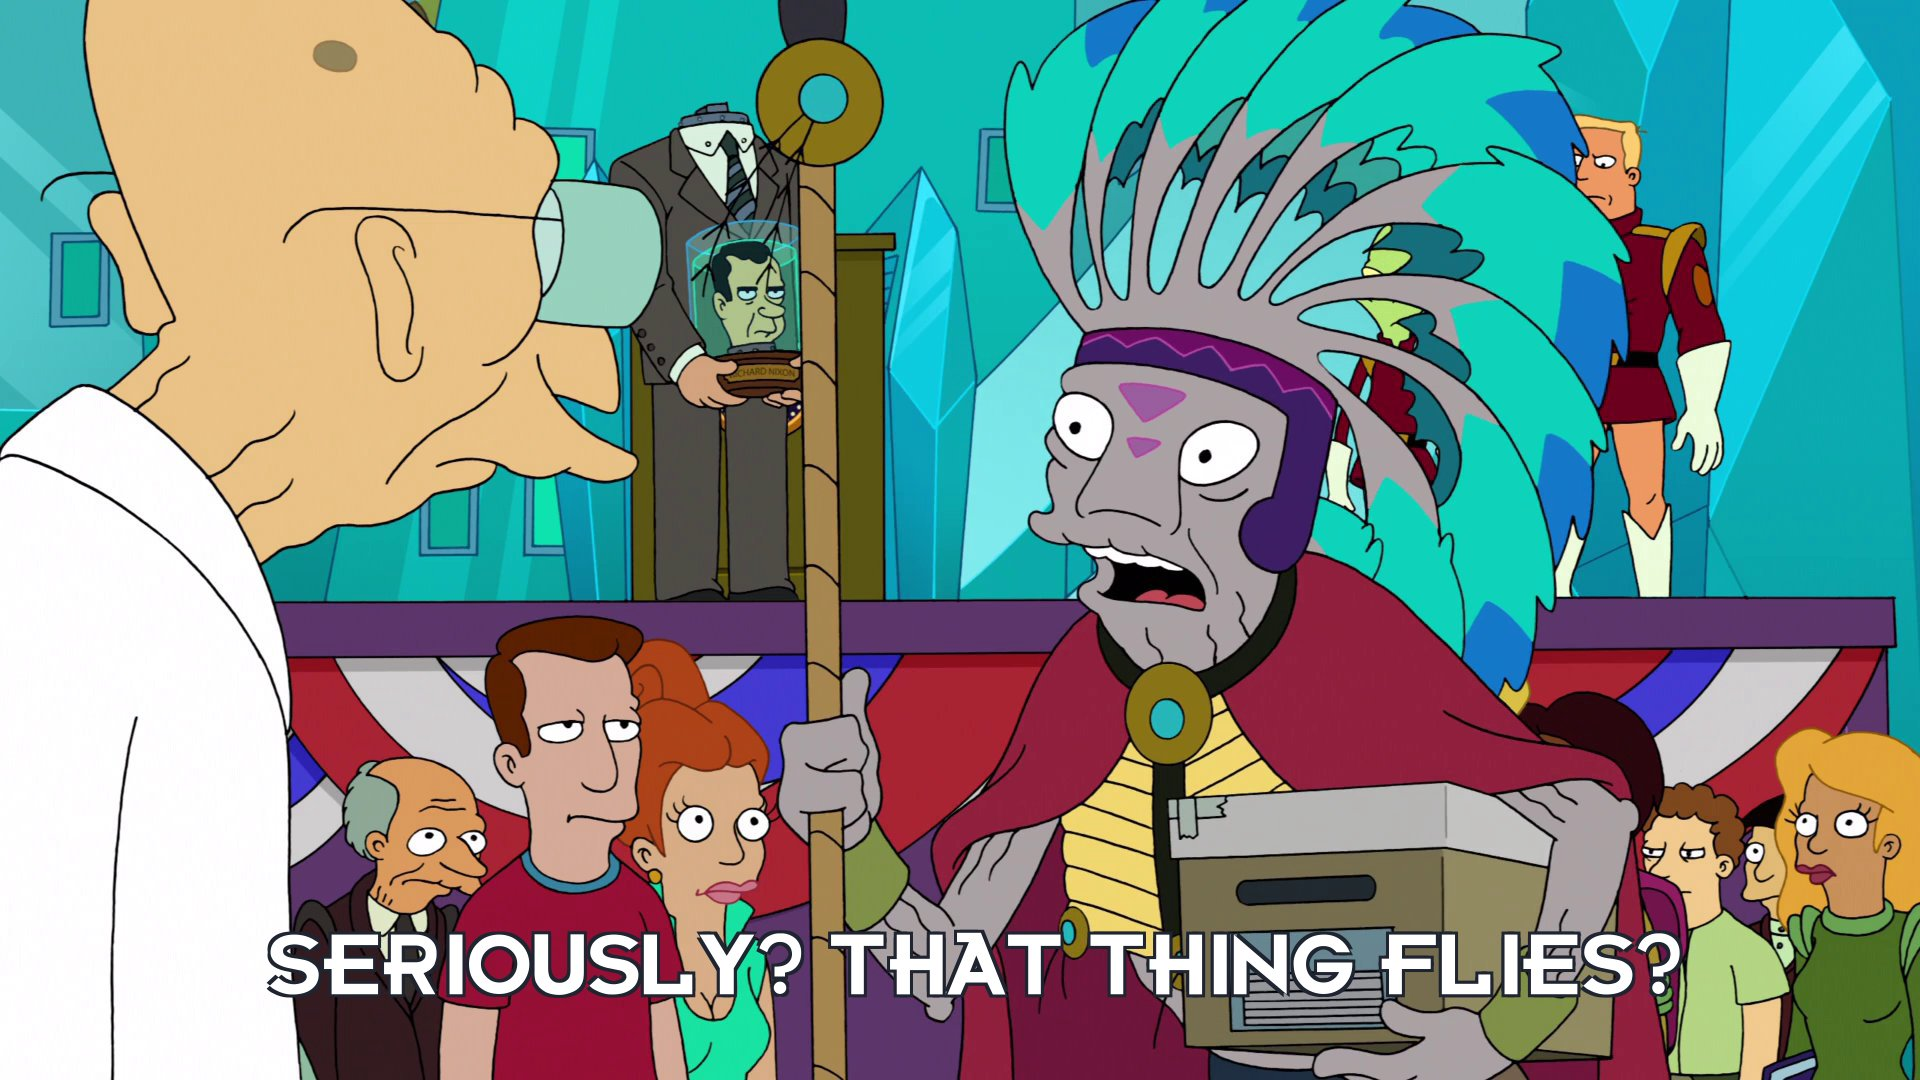 Singing Wind: Seriously? That thing flies?